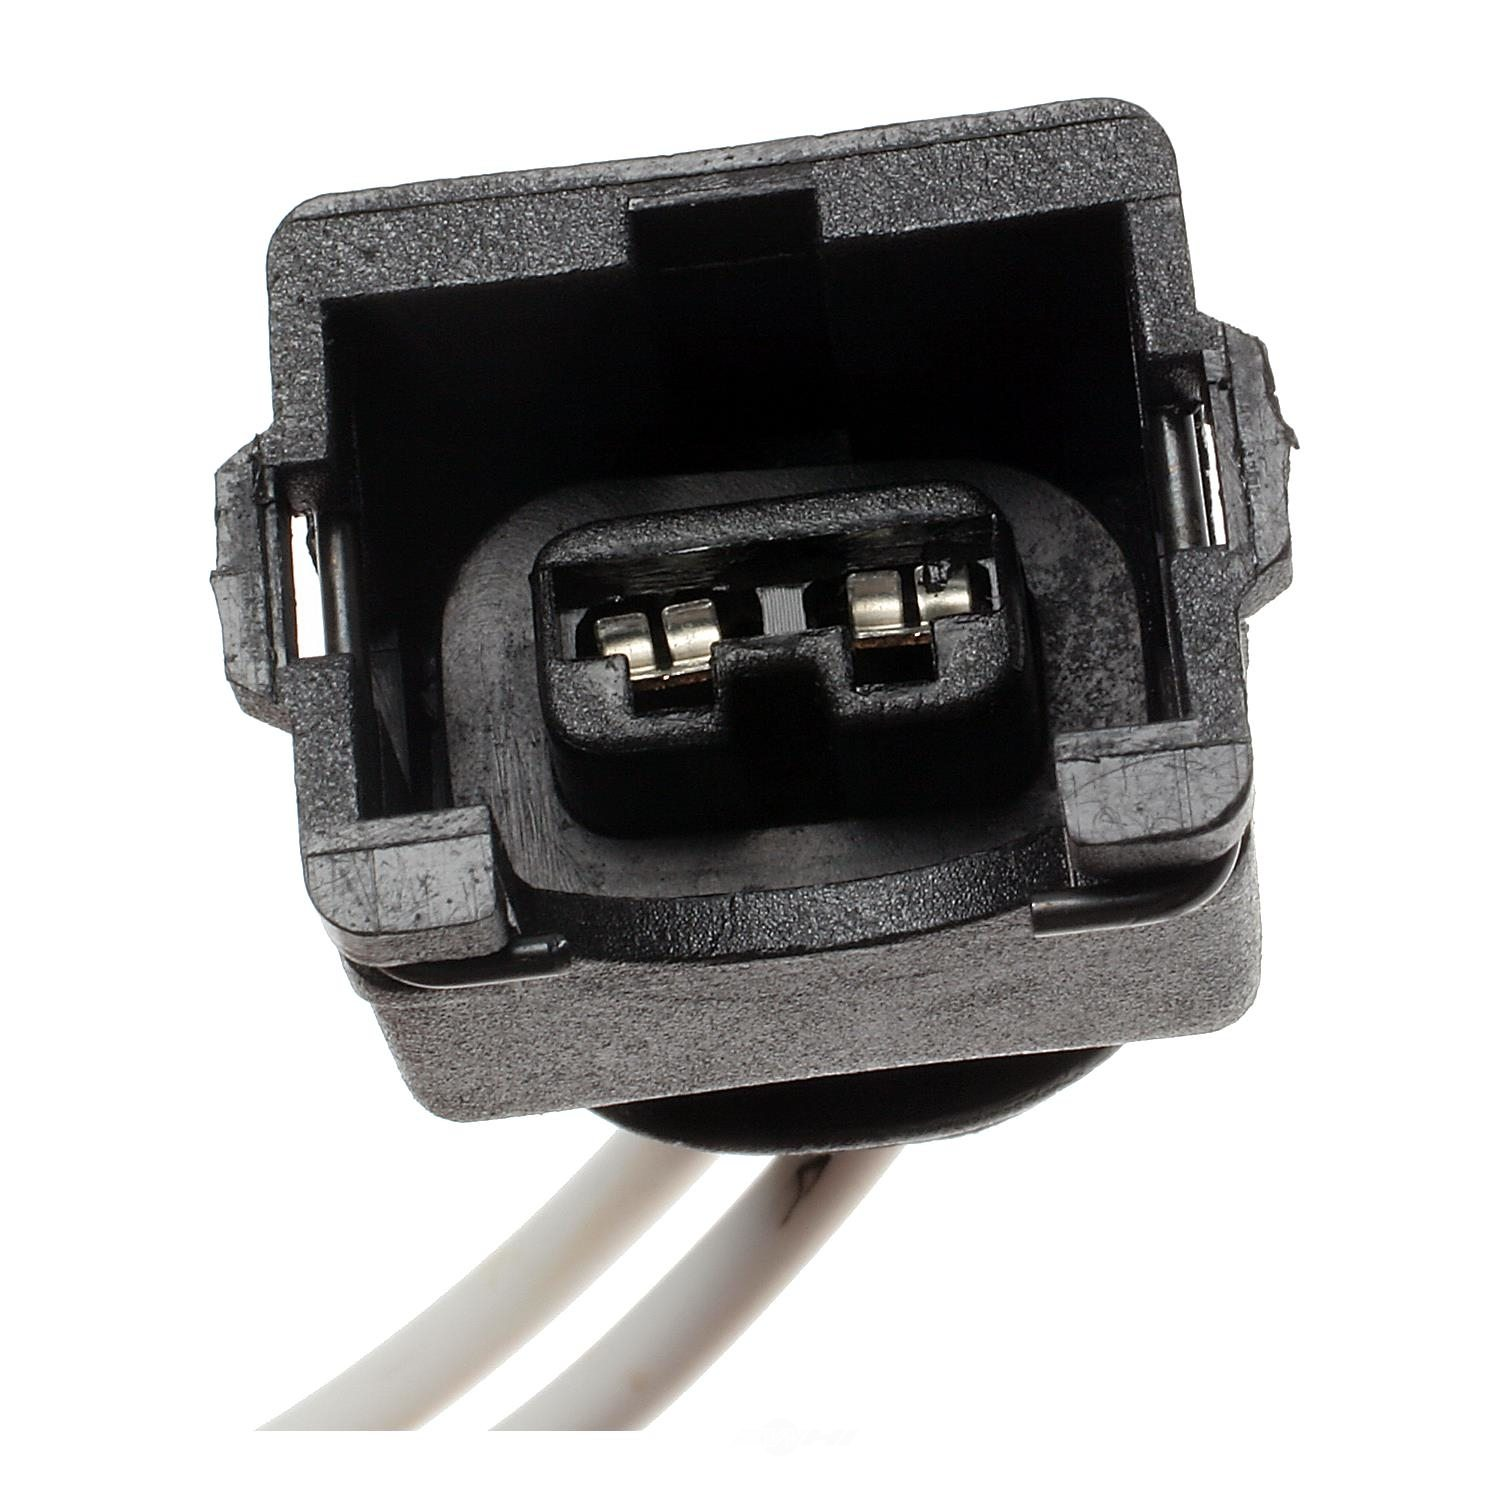 HANDY PACK - Multi Purpose Connector - HDY HP3860